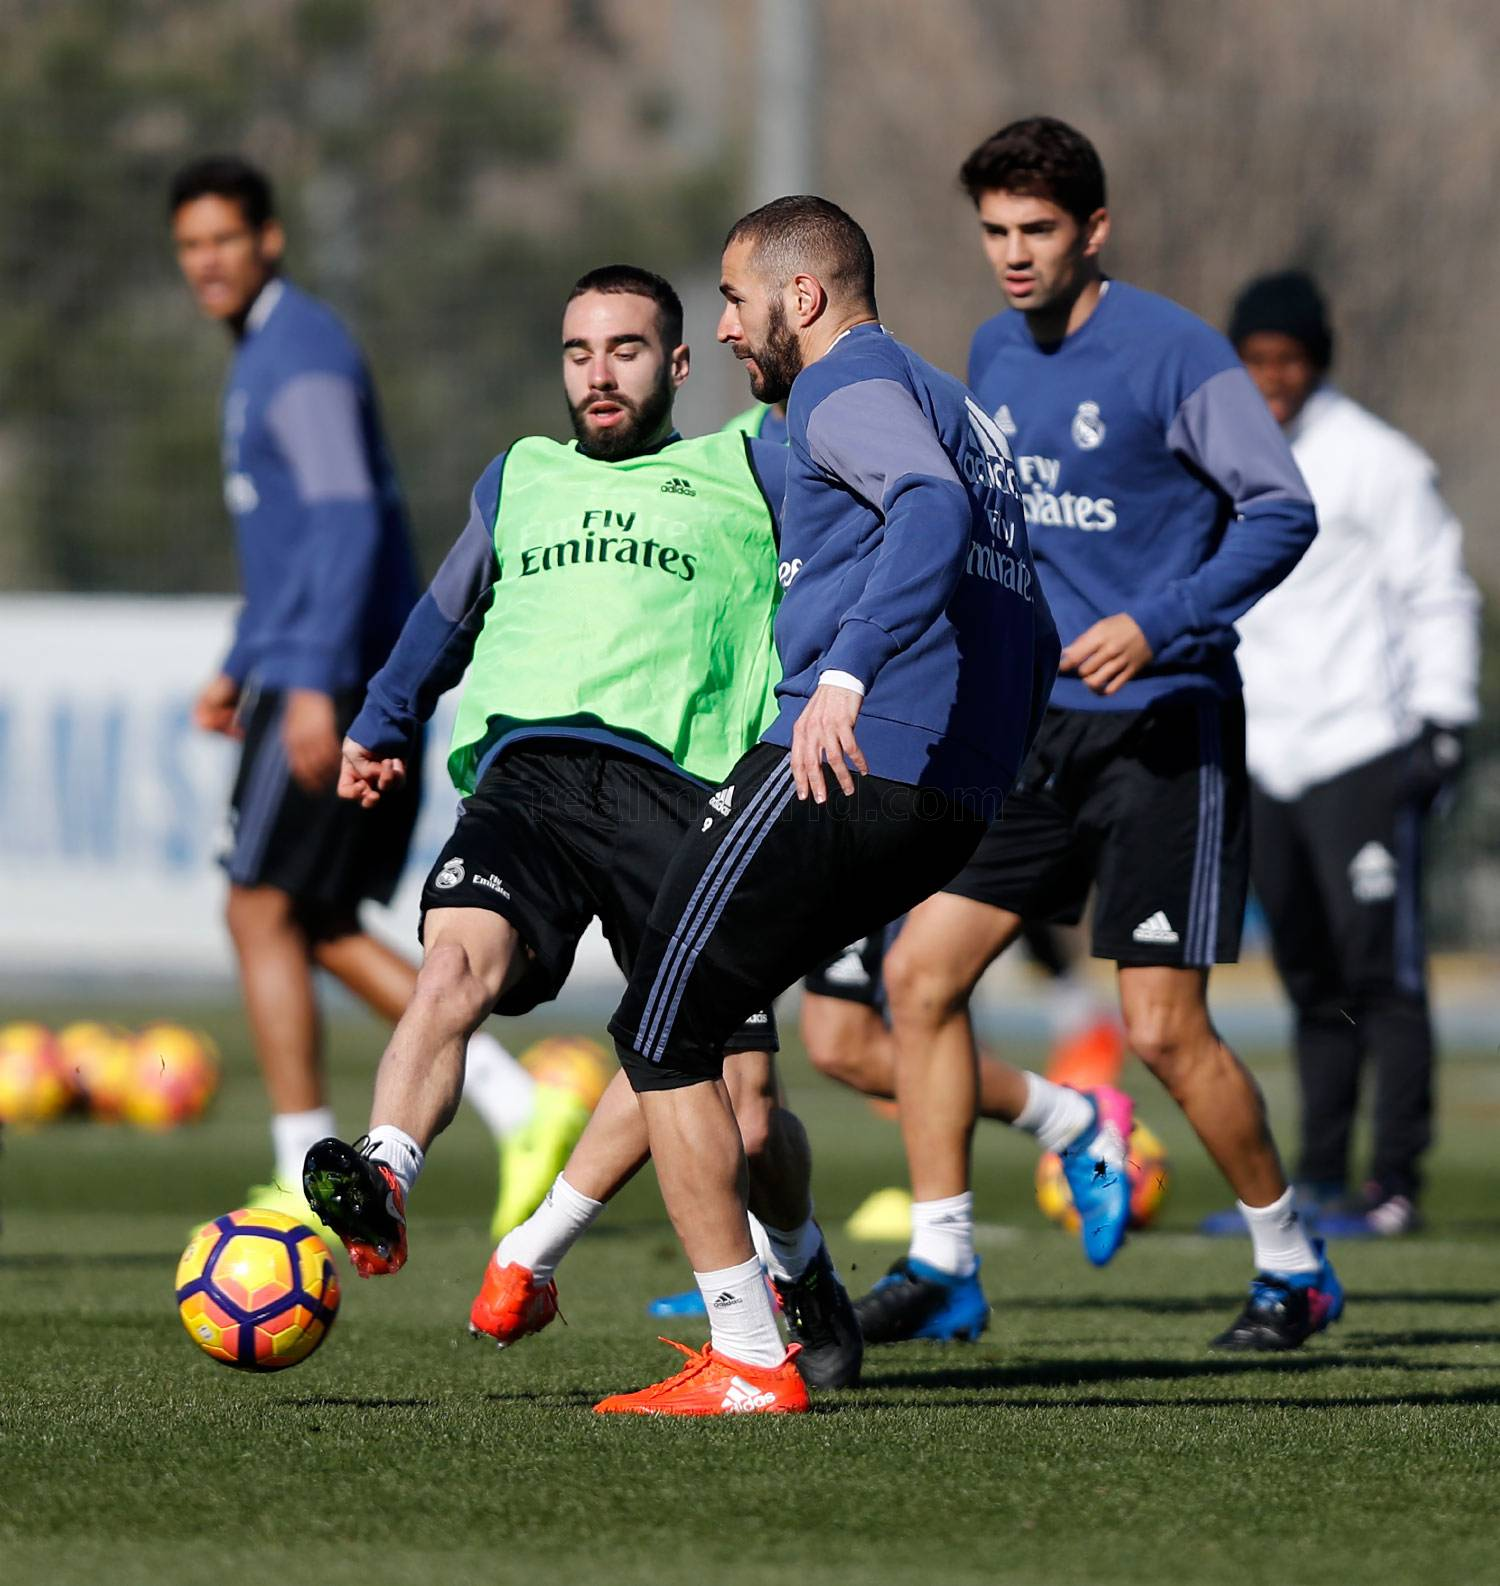 Real Madrid - Entrenamiento del Real Madrid - 21-02-2017